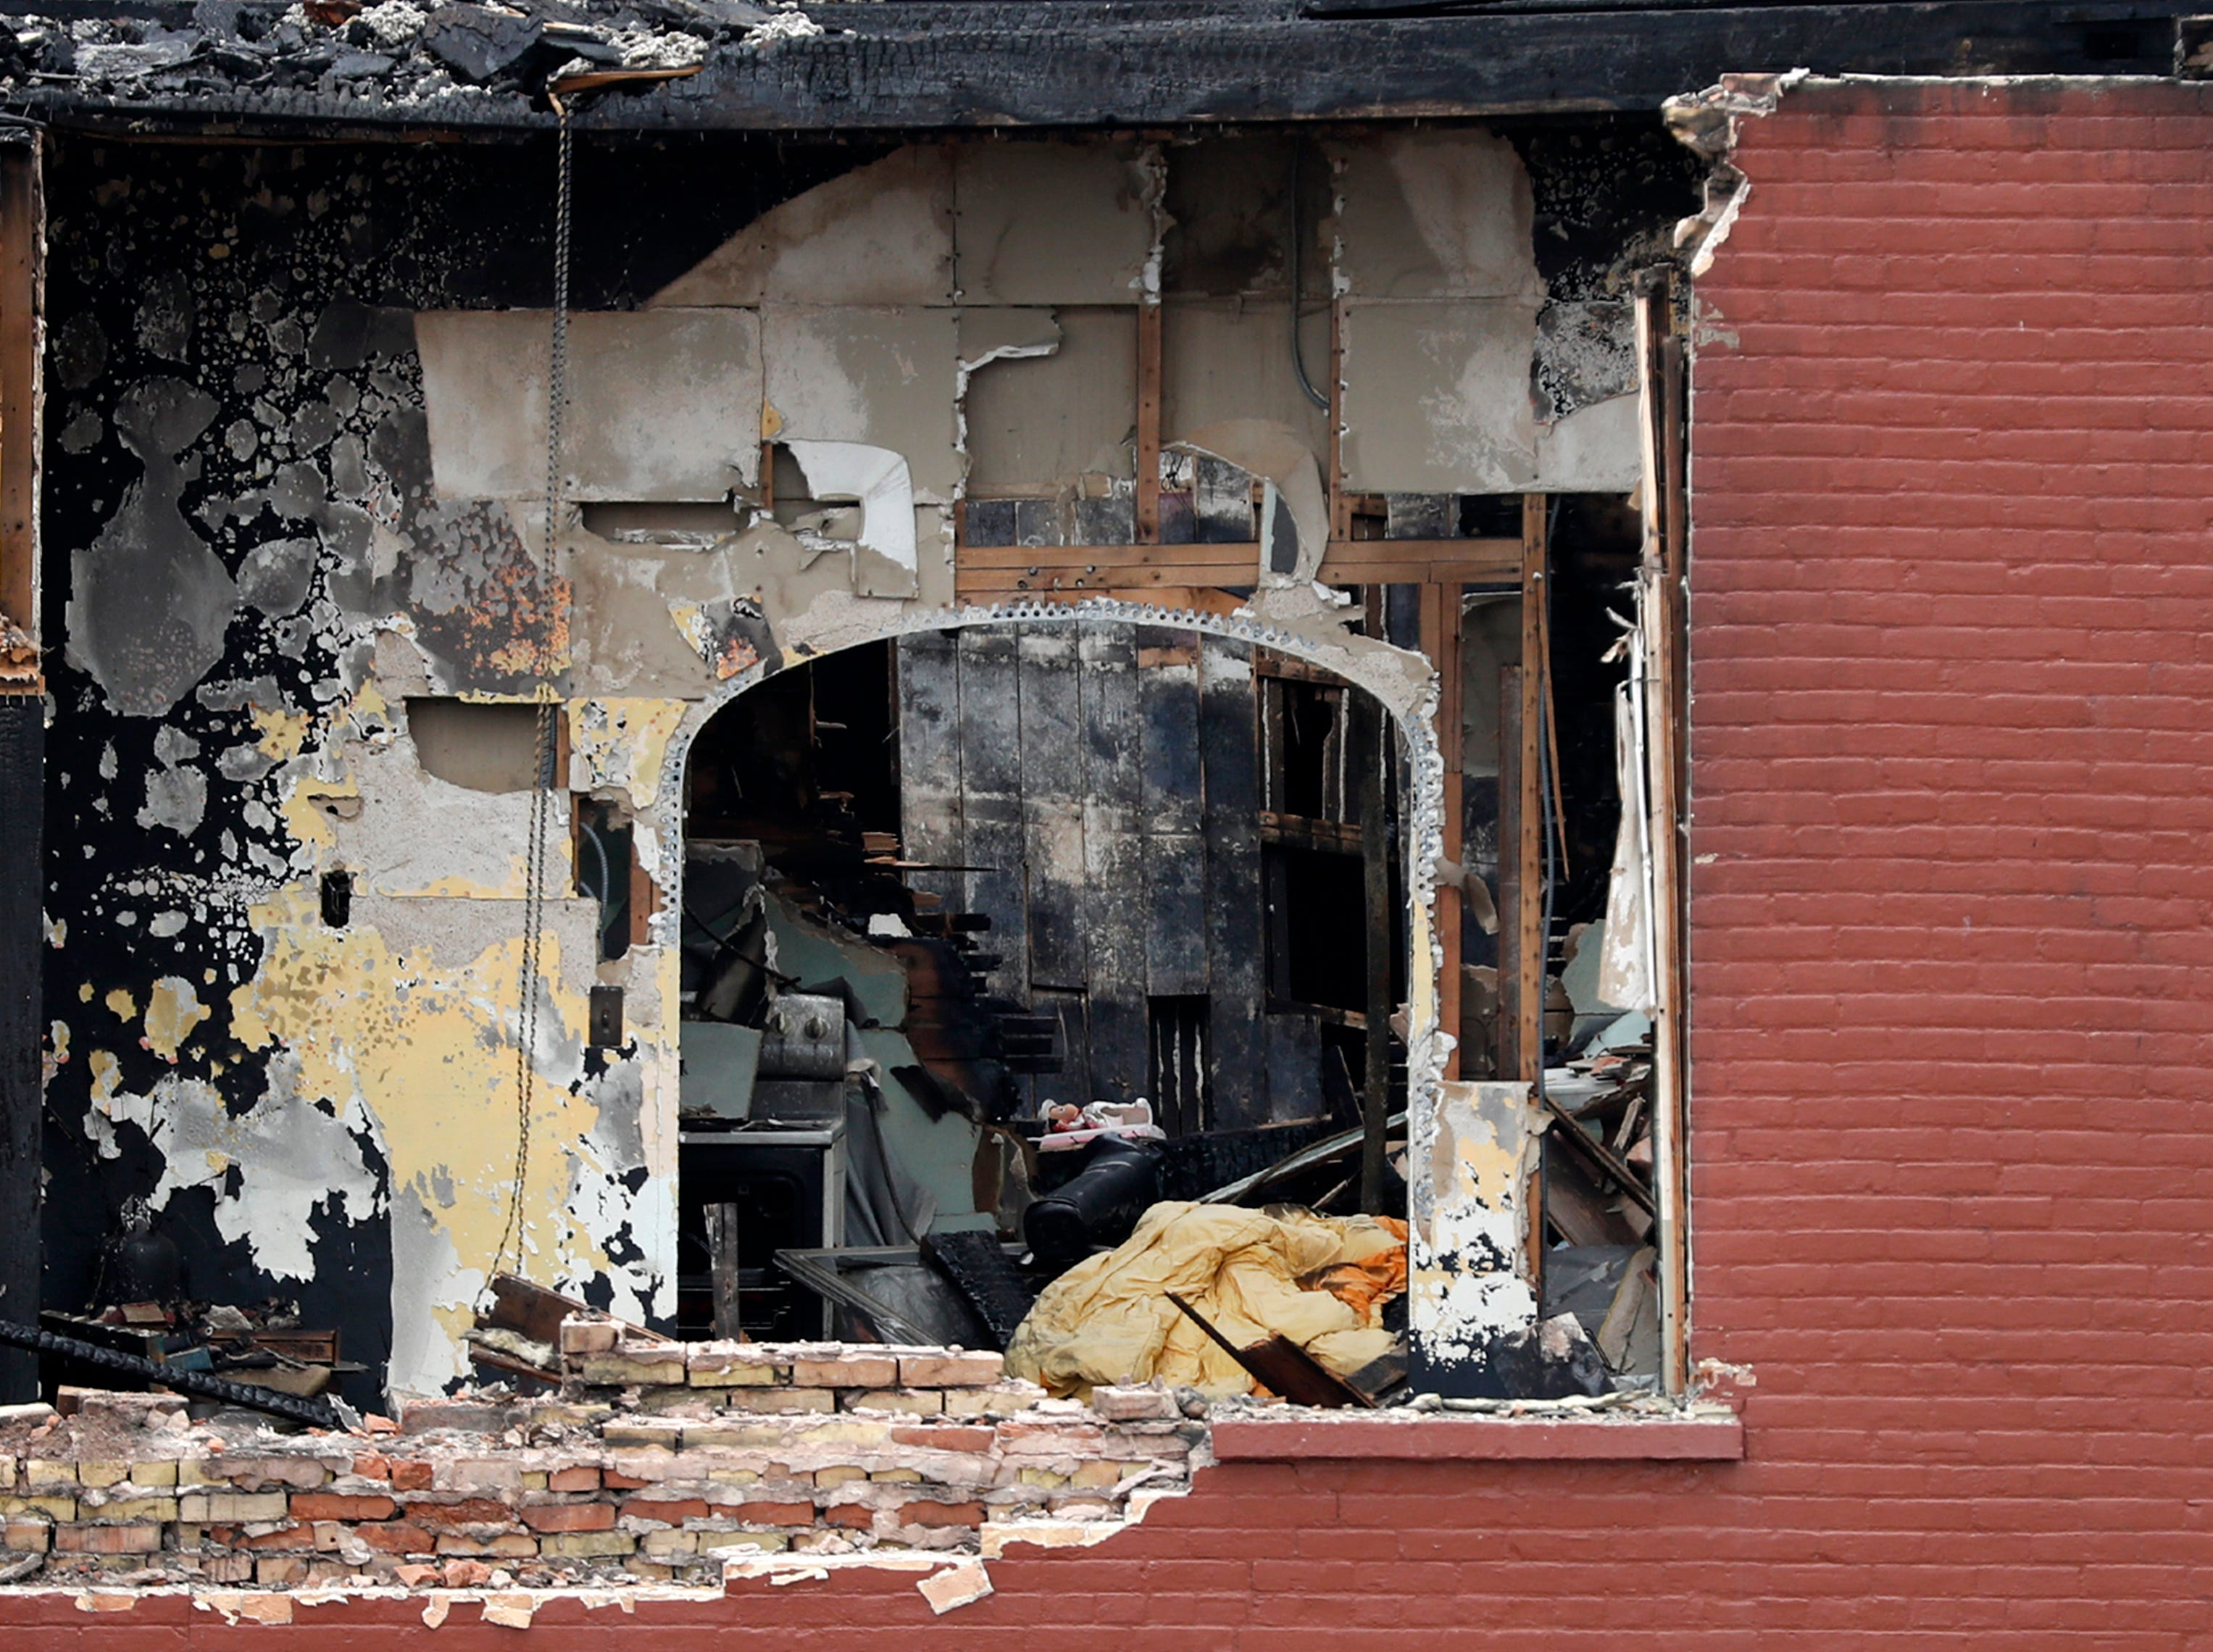 Fire damaged apartments are visible as demolition begins on the building that housed Author's Kitchen and Bar and apartments on the corner of West Washington and North Appleton Streets Monday, April 22, 2019, in Appleton, Wis. 